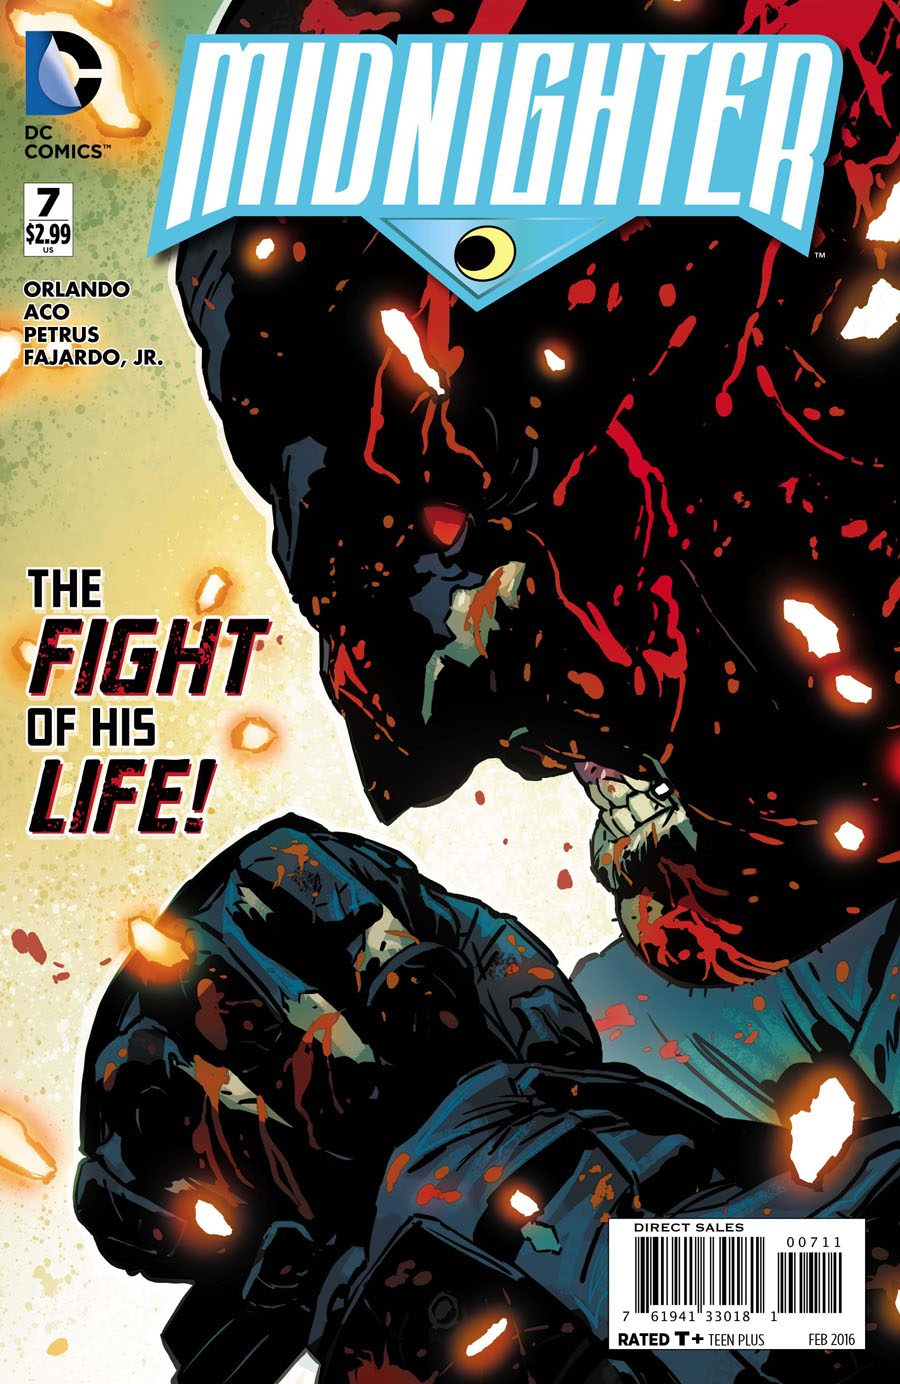 Midnighter Vol 2 #7